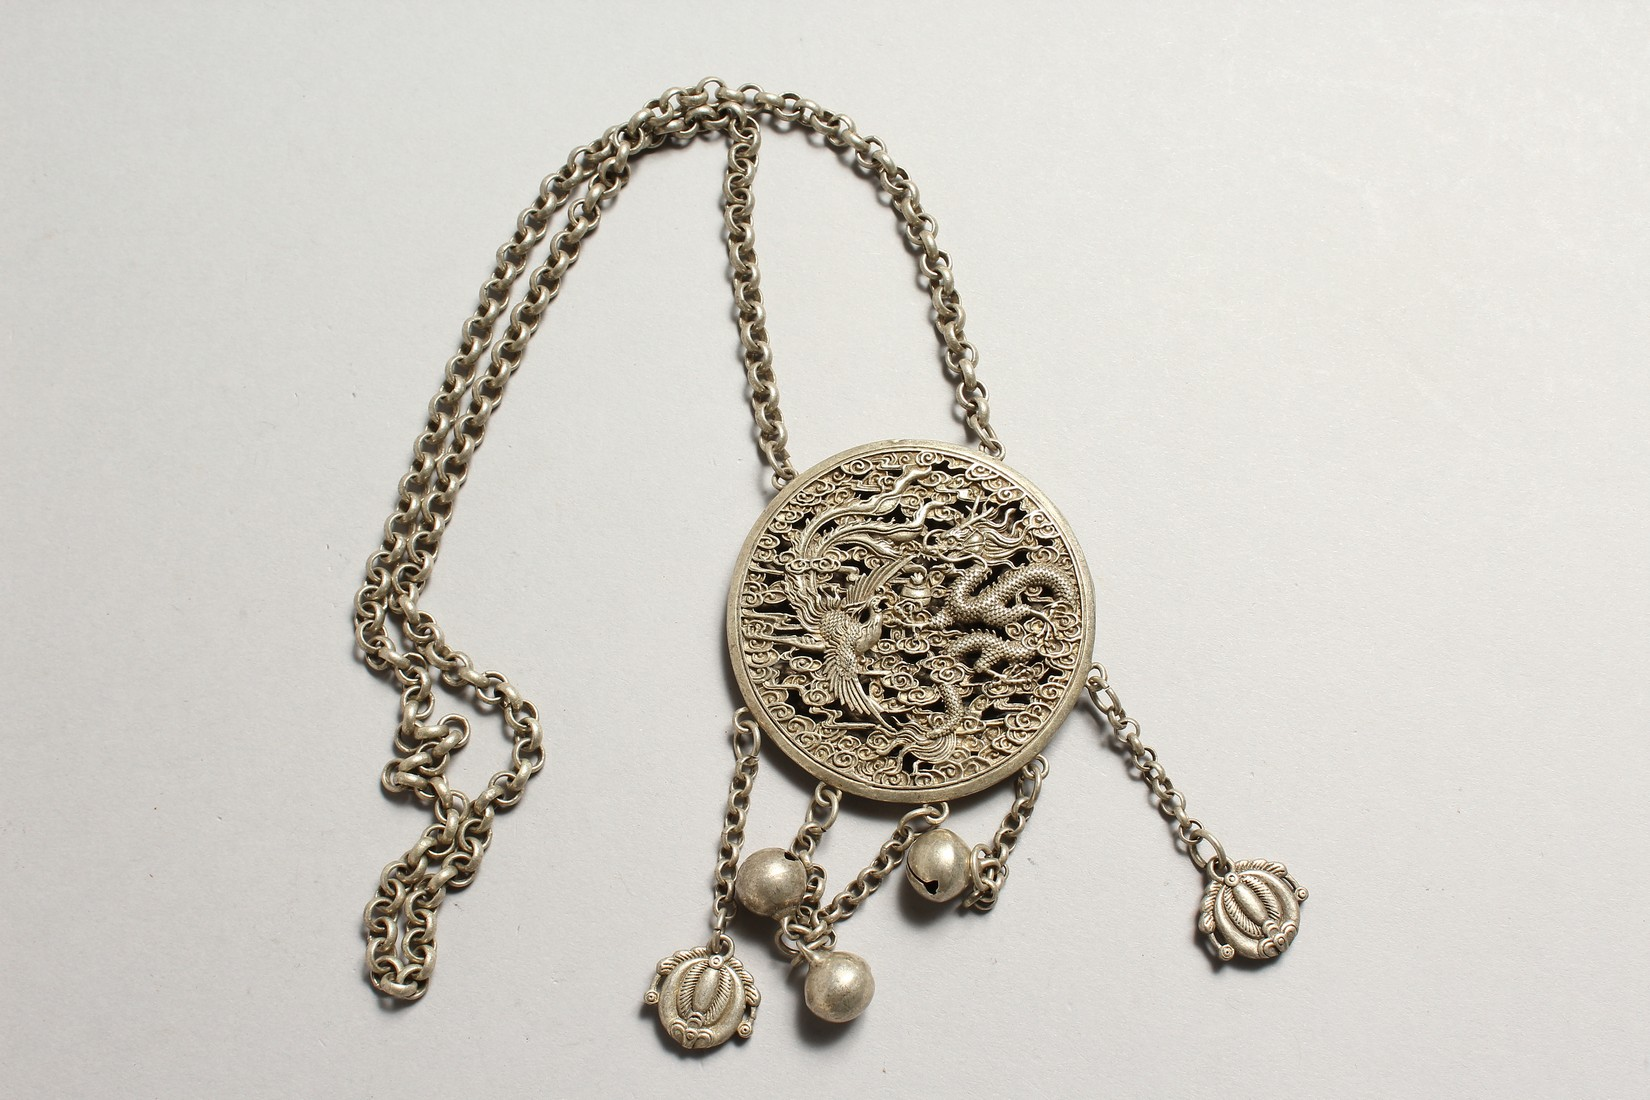 A CHINESE SILVER YIN-YANG PENDANT on a chain with dragon and phoenix. - Image 3 of 4